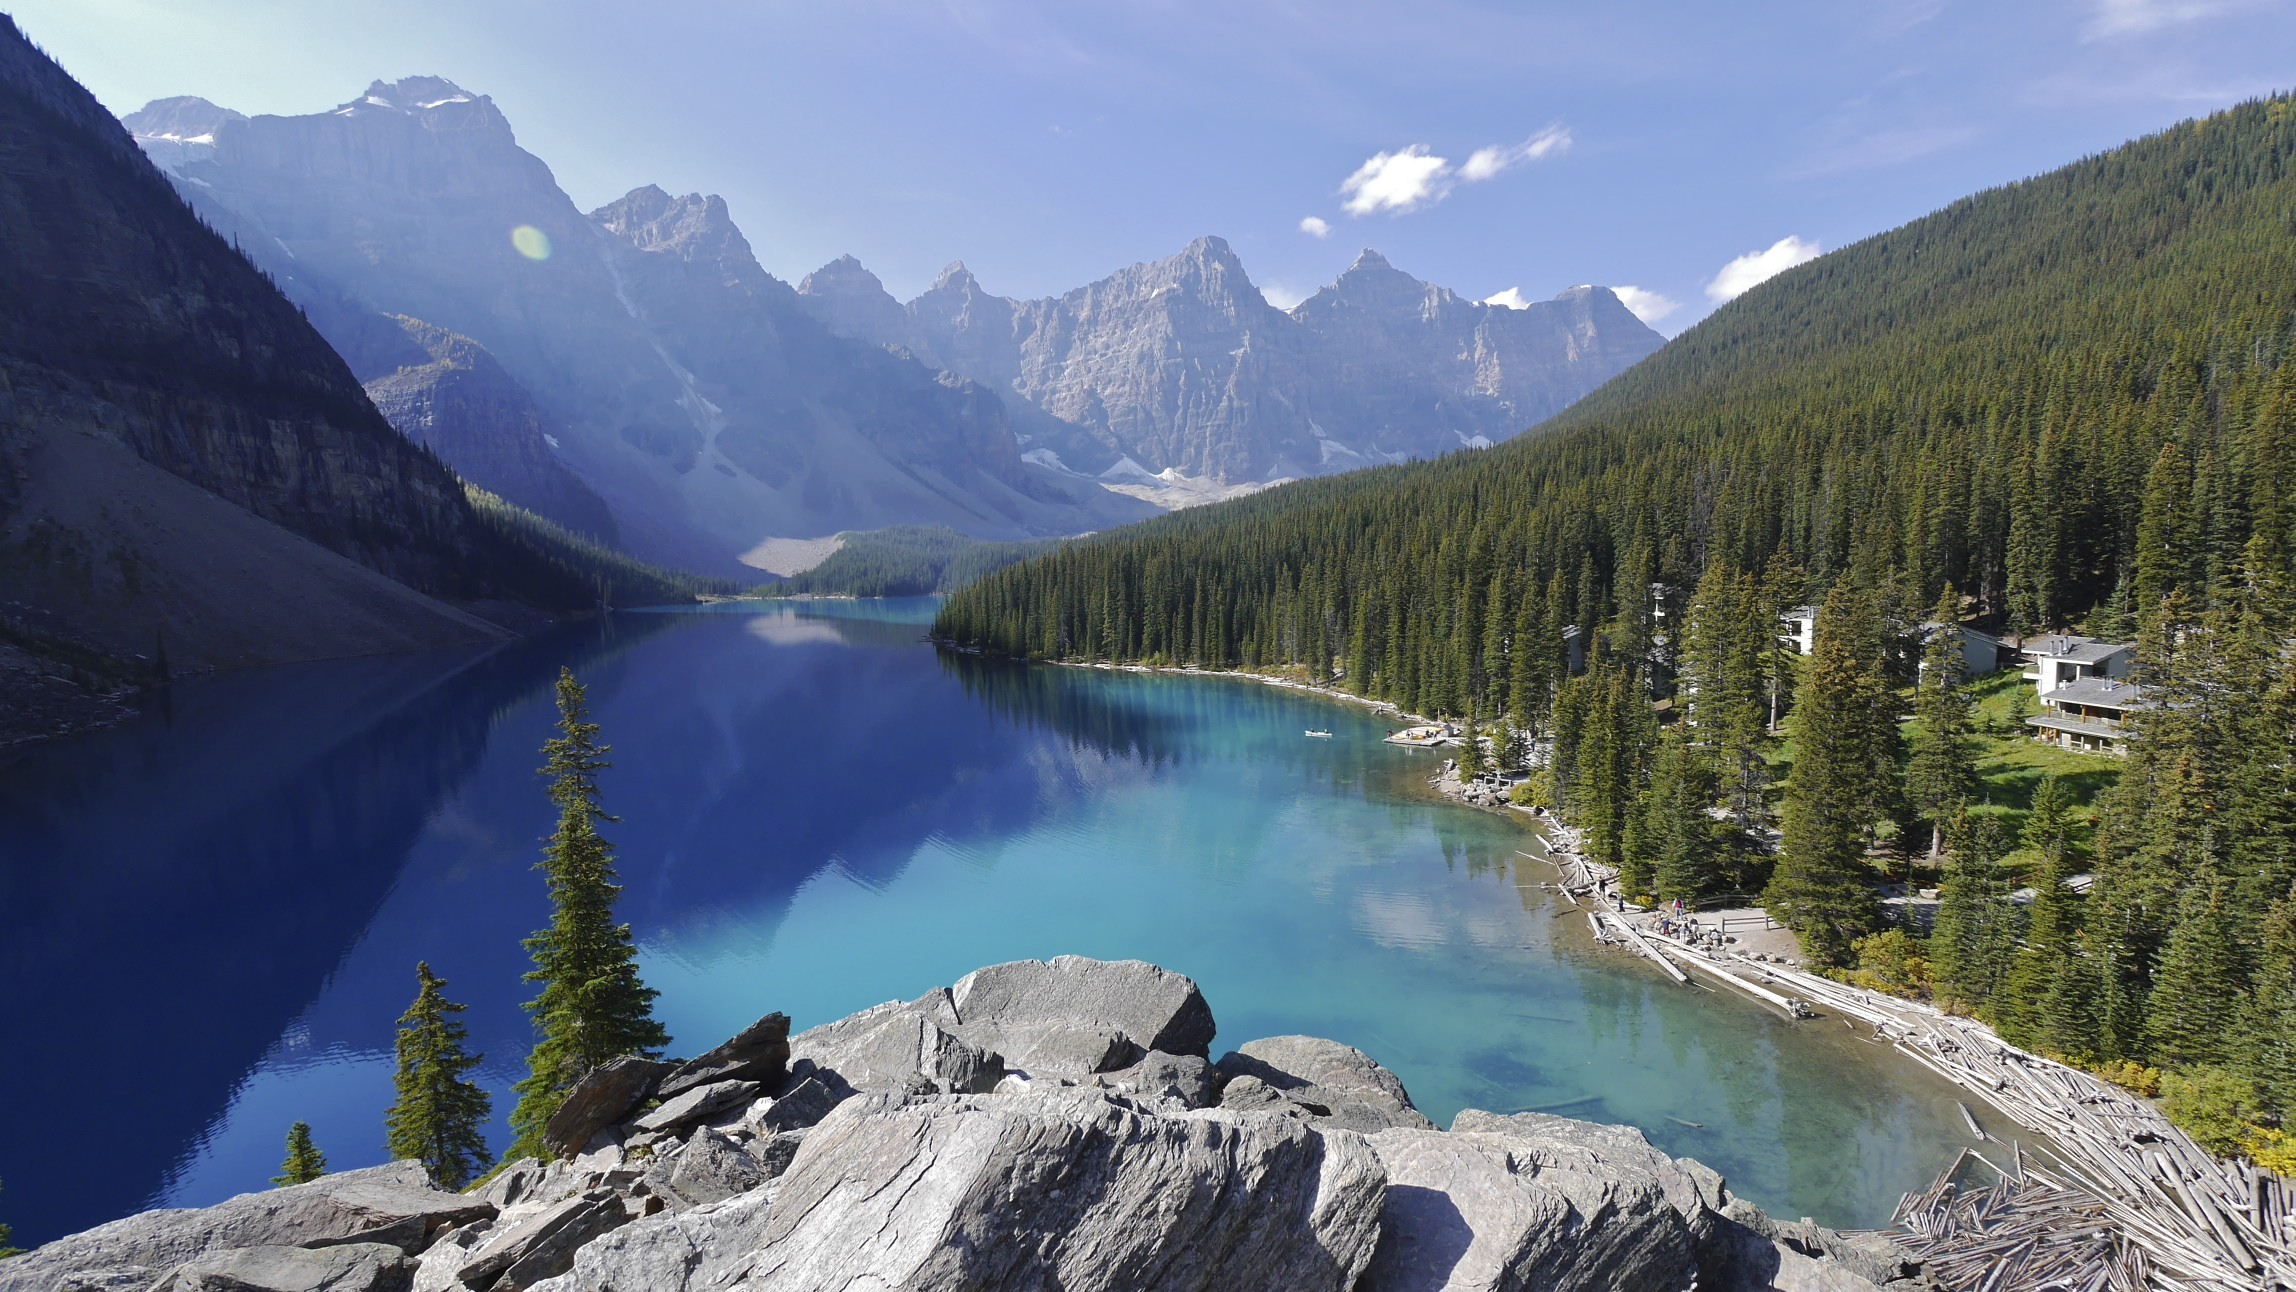 Moraine Lake and Valley of 10 Peaks